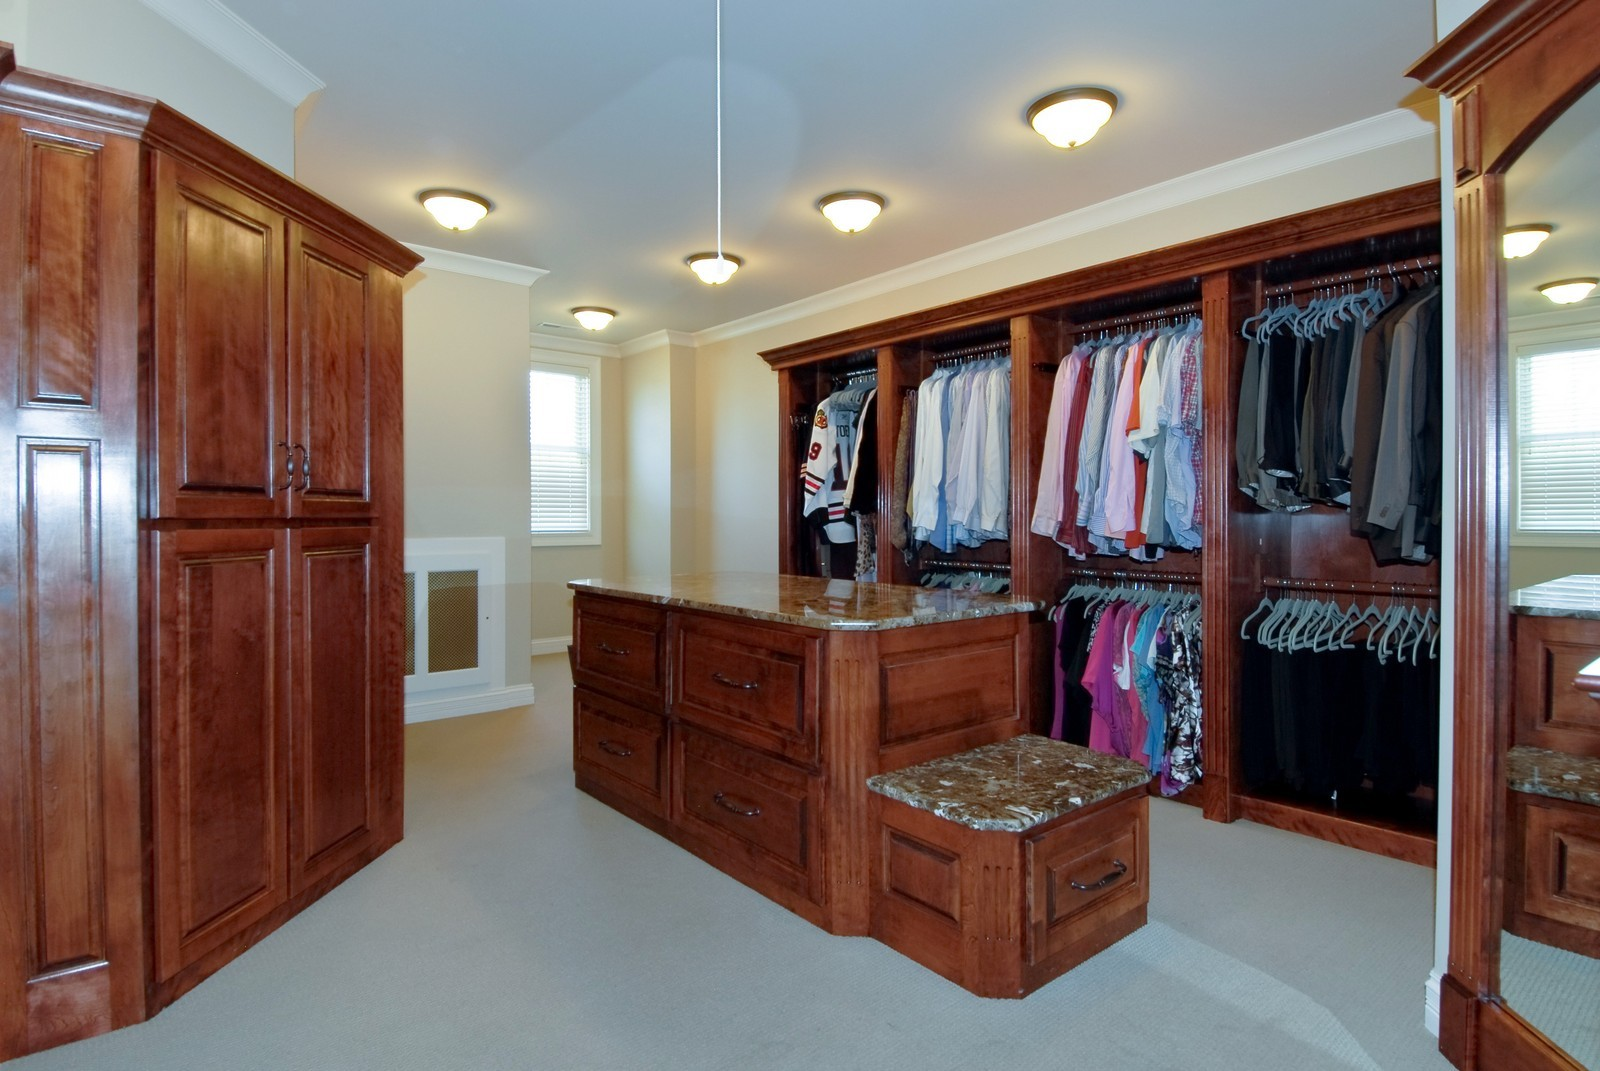 Real Estate Photography - 729 Wellner Dr, Naperville, IL, 60540 - Master Bedroom Closet